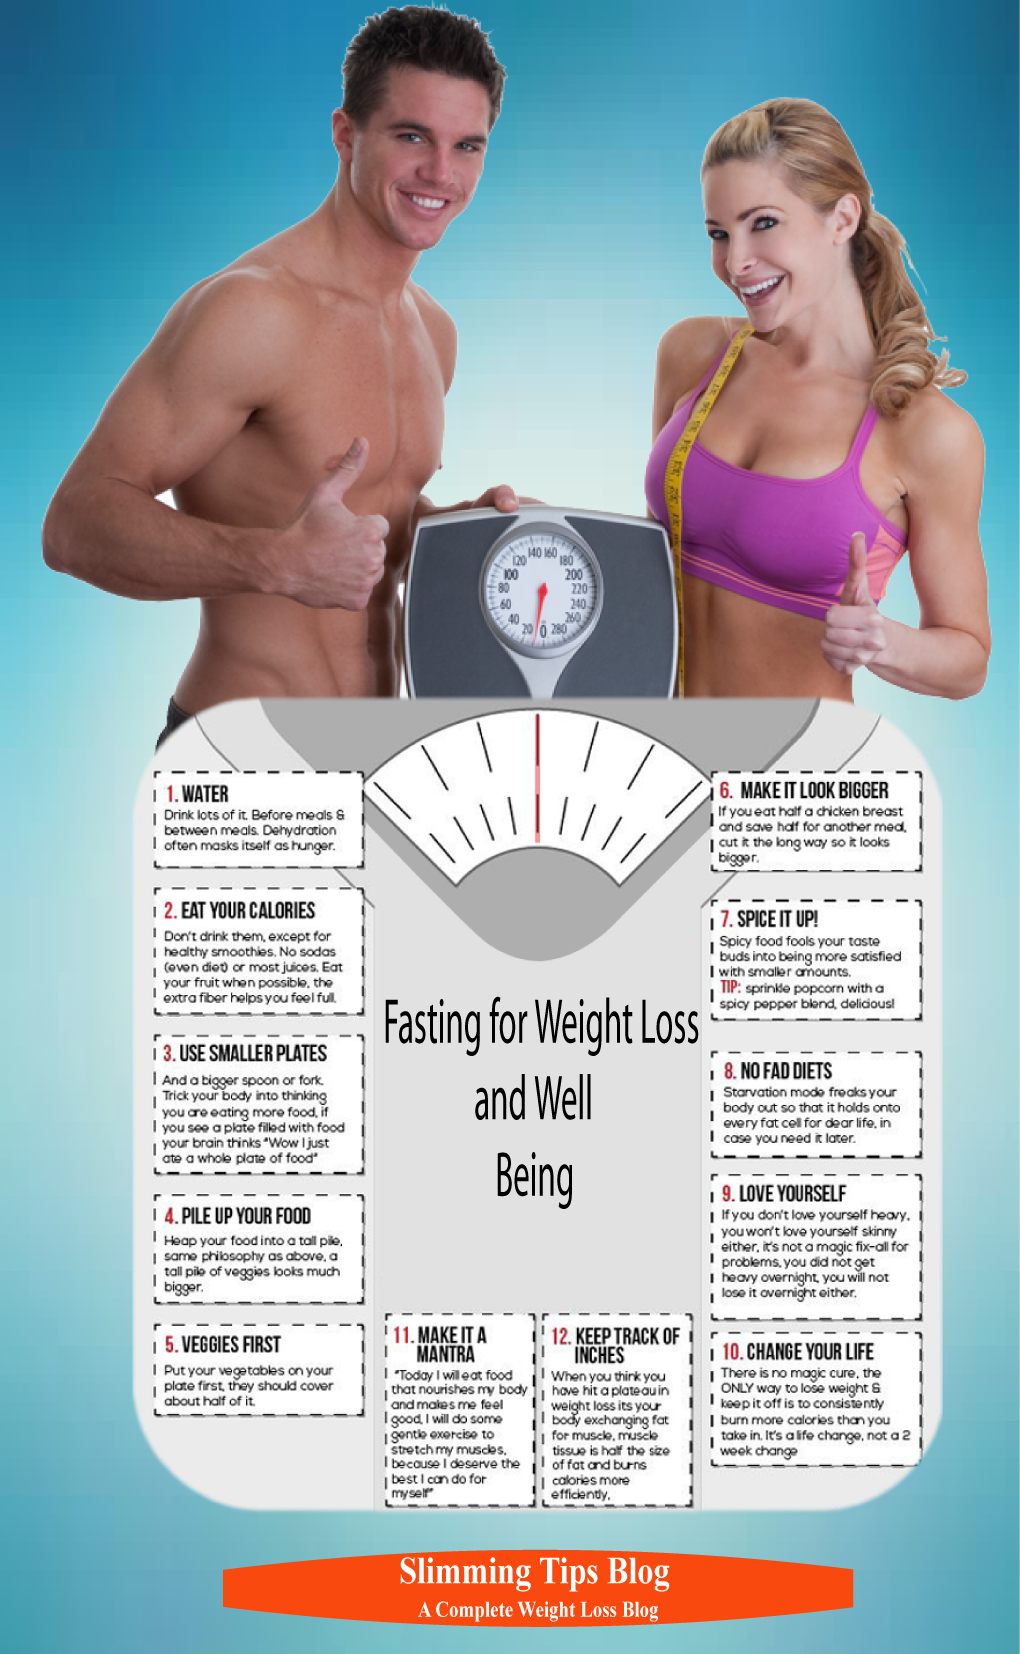 Weight loss is not an easy task if you don't have a strong determination, find the best tips on How To Lose Weight In 7 Days Without Exercise